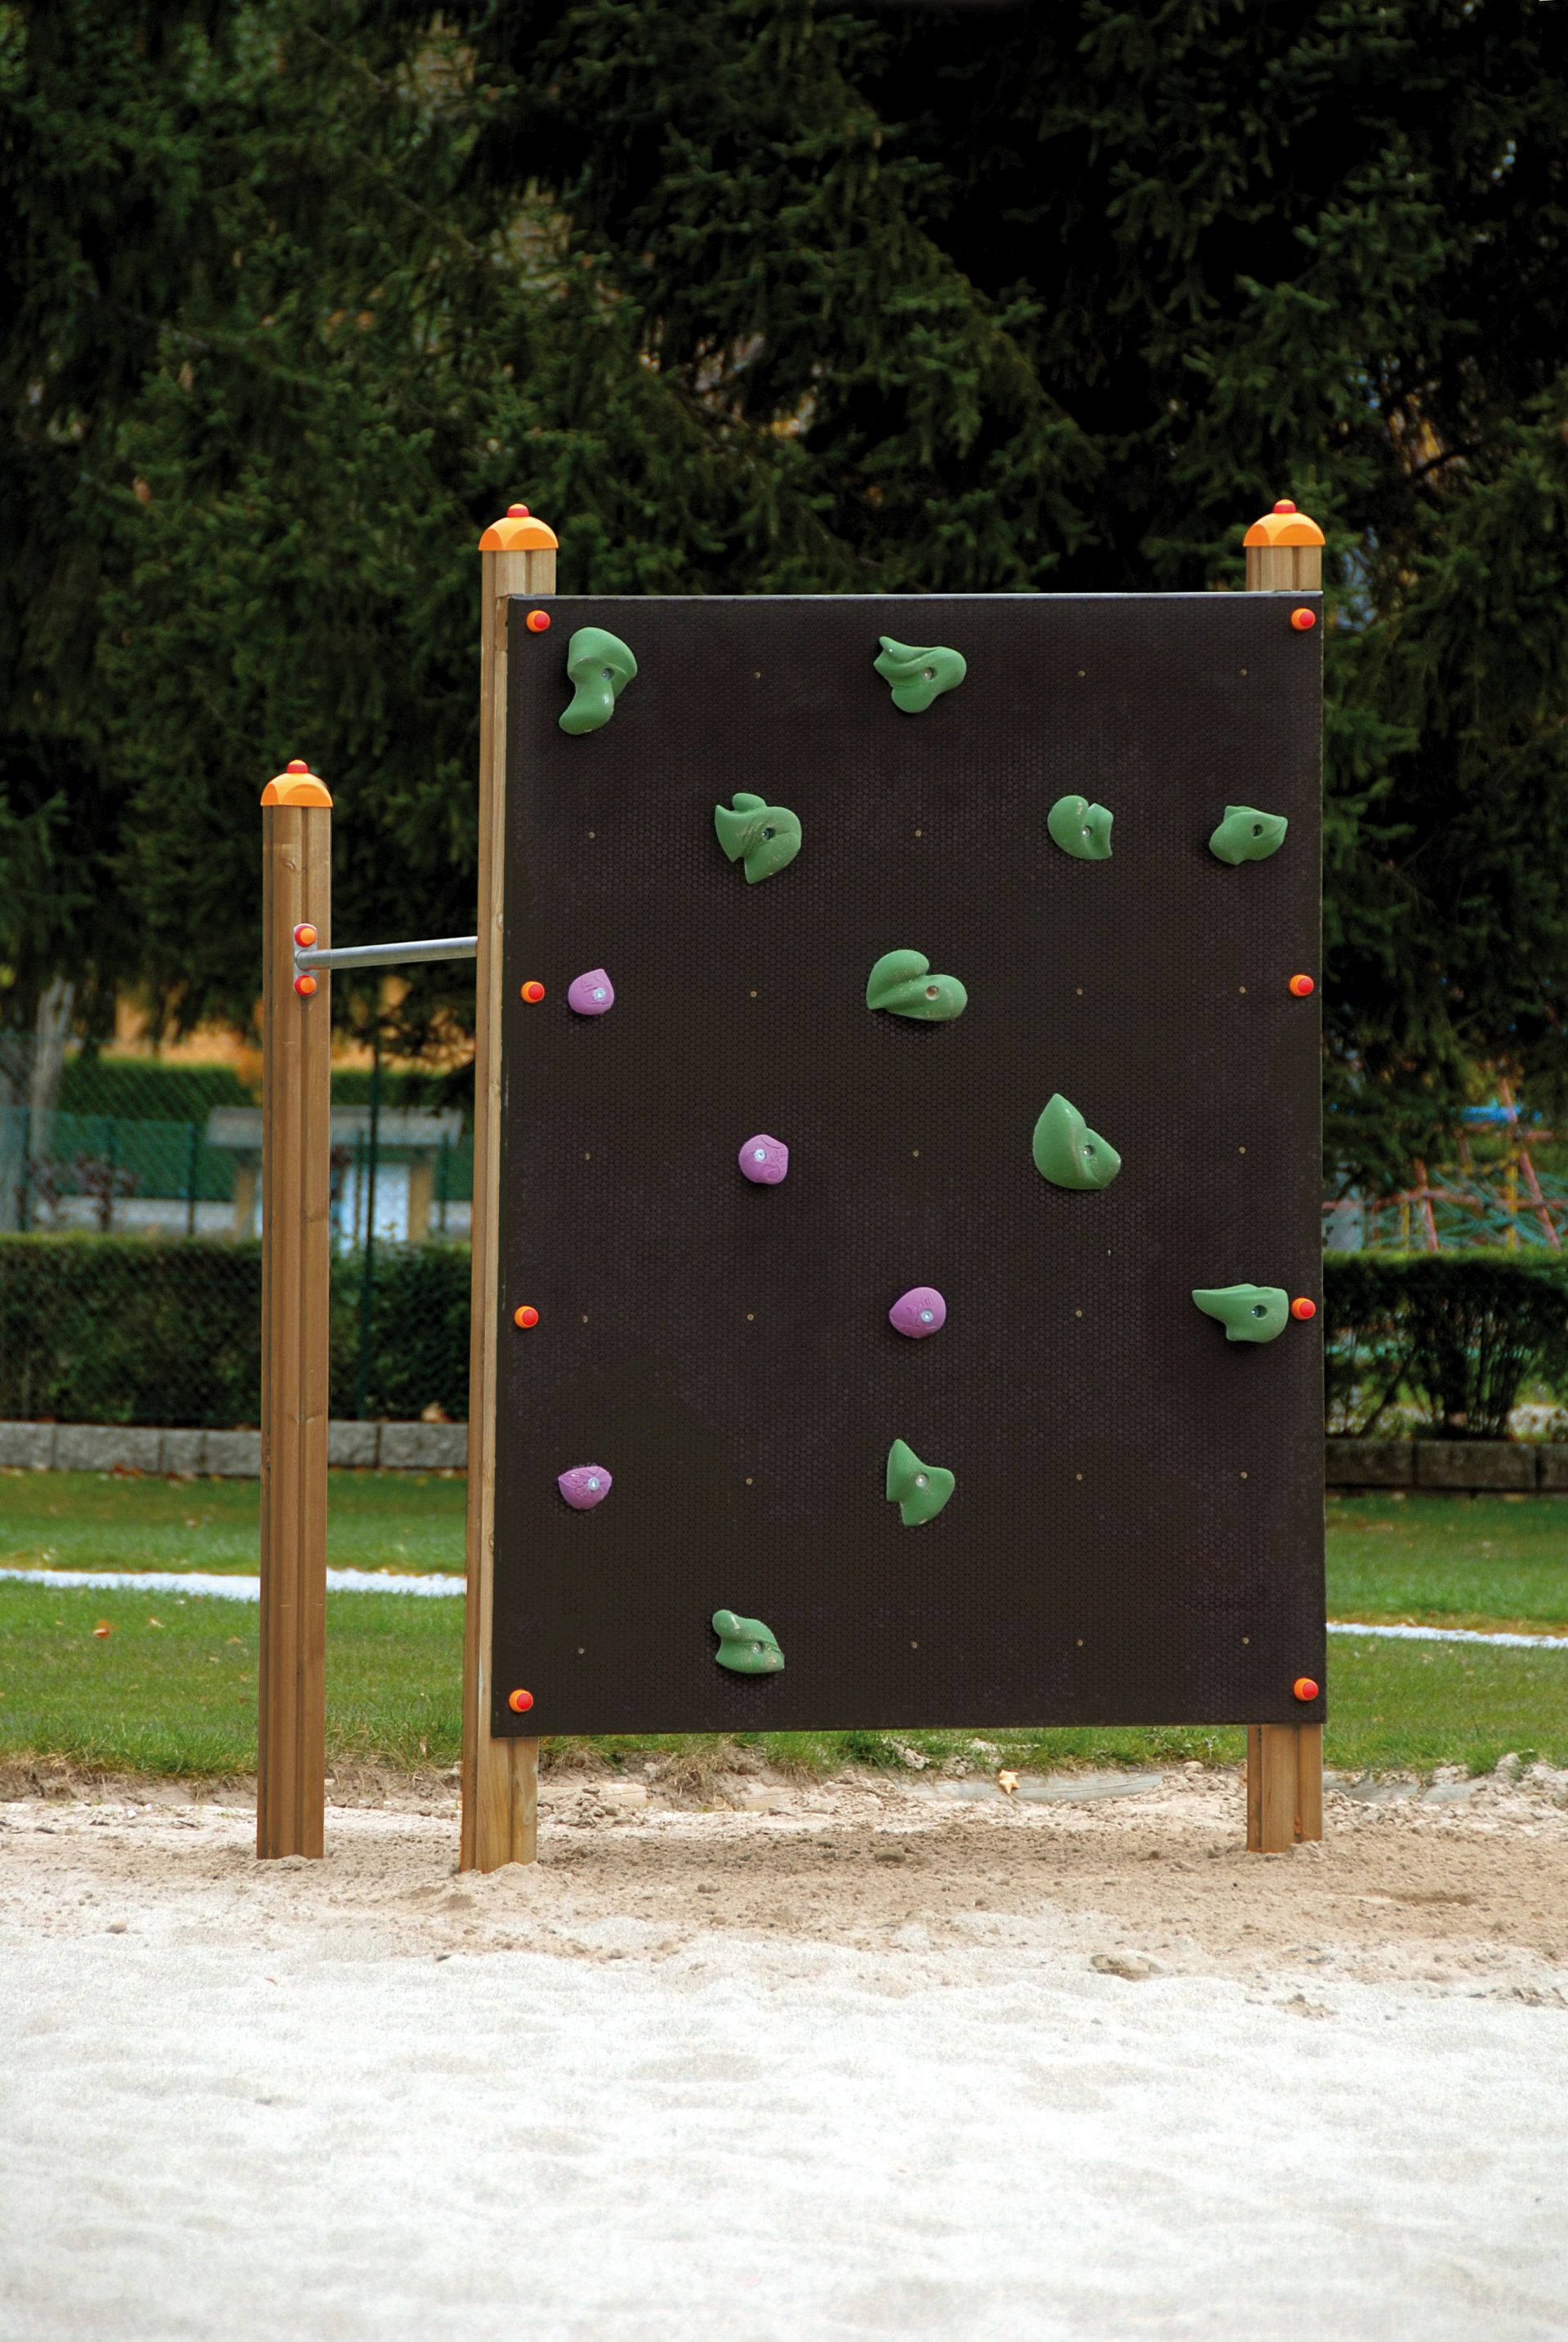 Holzhof CLIMBING STRUCTURES Corner excercise structure with climbing wall + 1 hanging bar